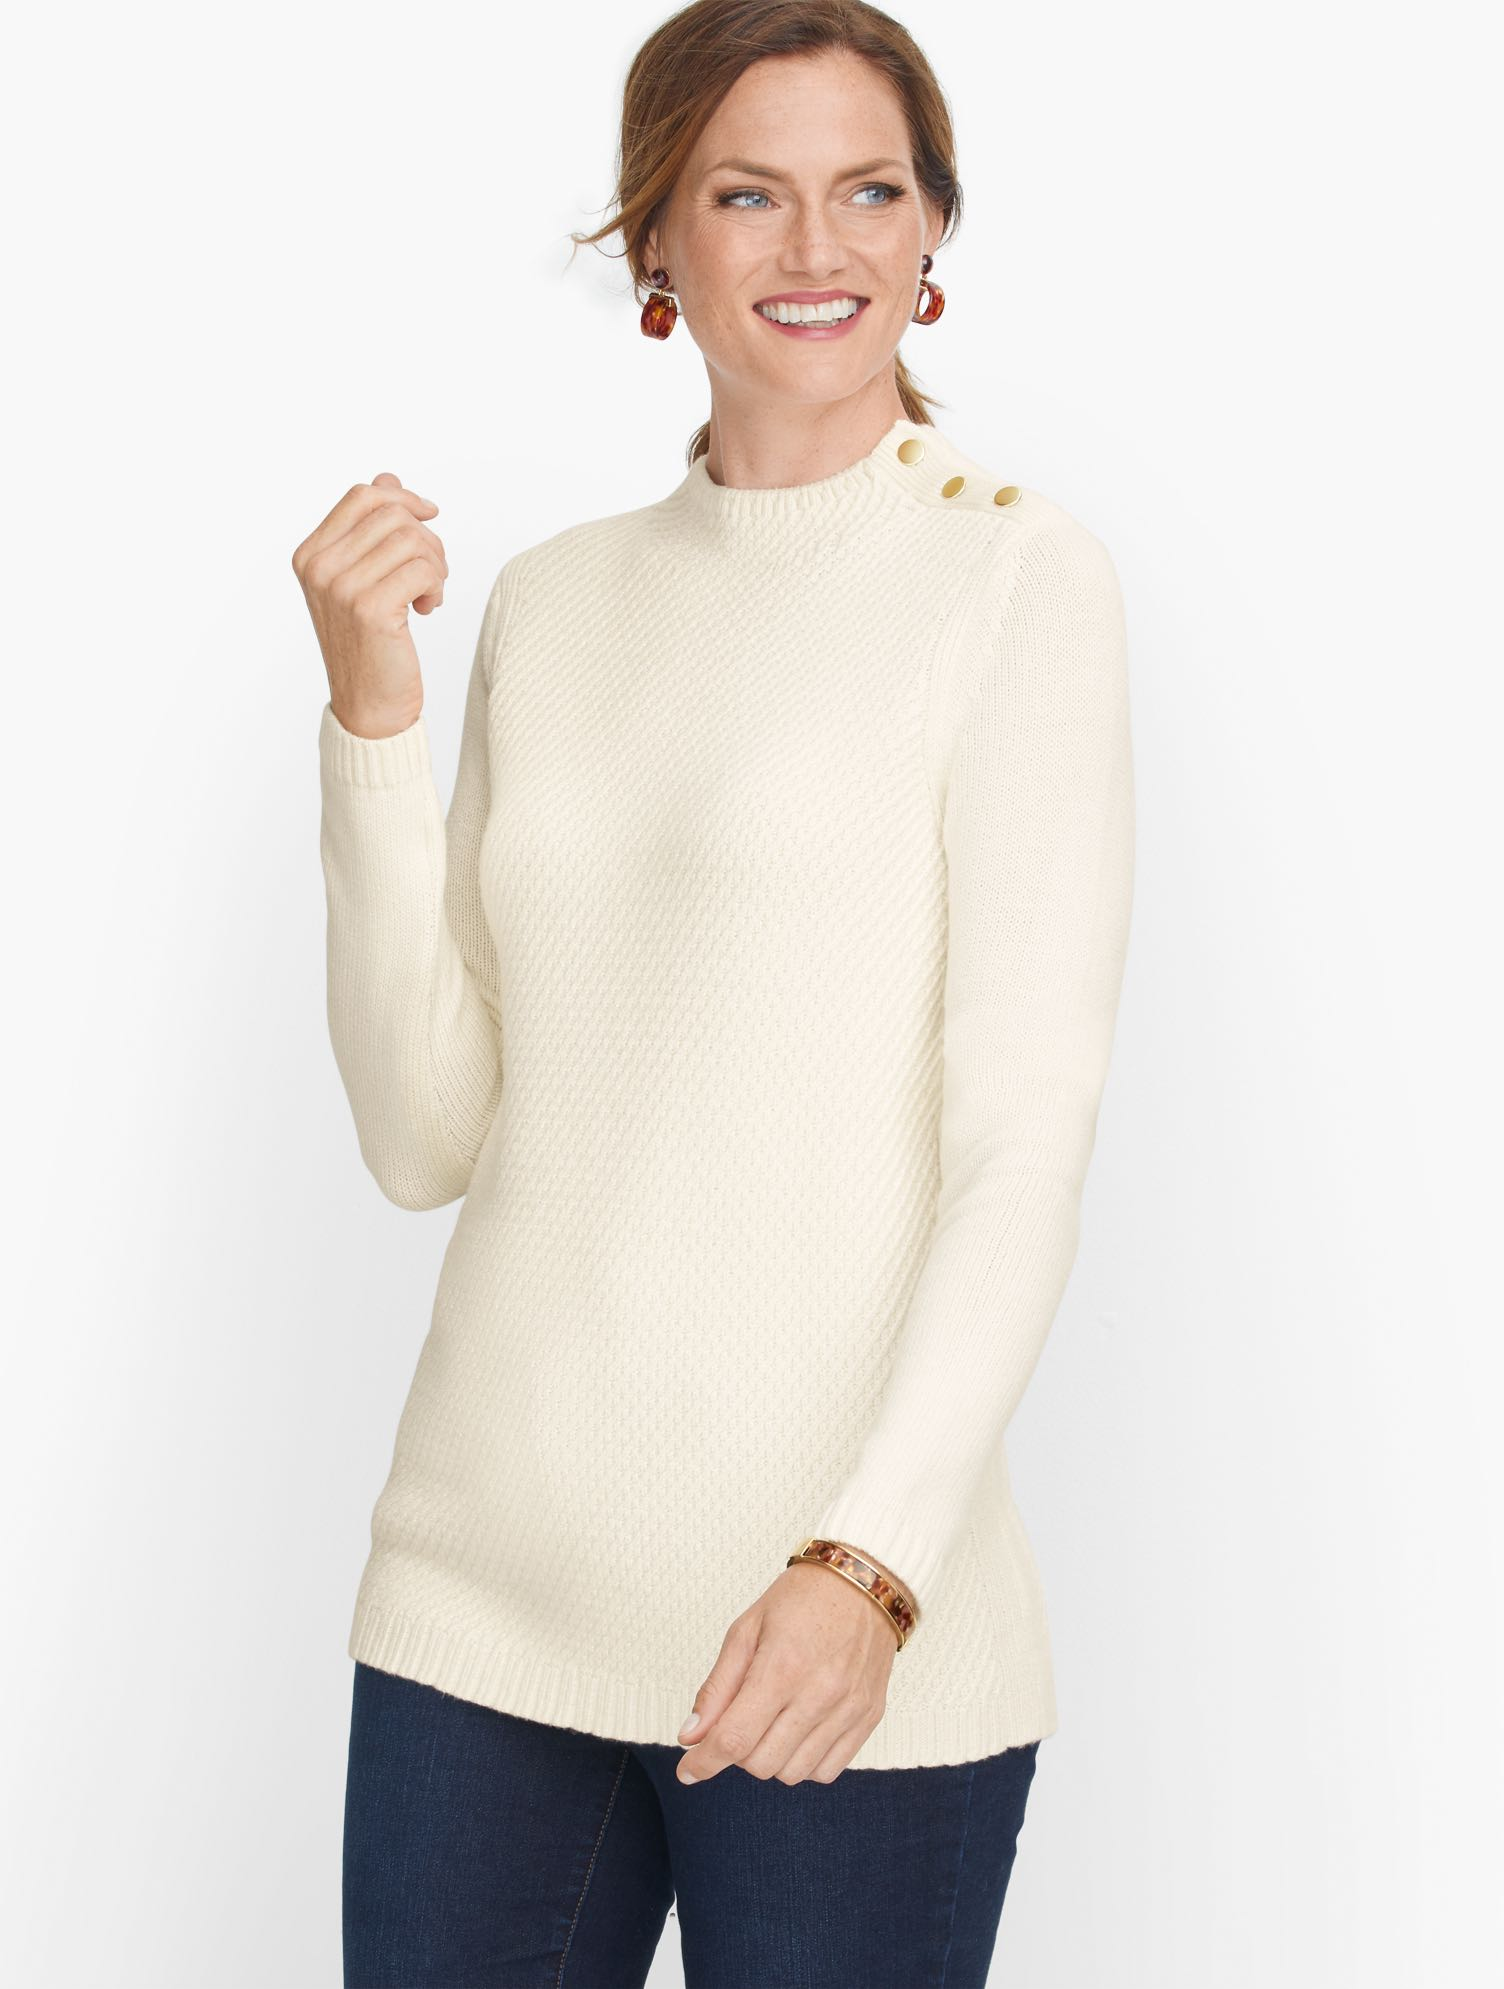 The mockneck sweater. An iconic silhouette. Buttons at the shoulder. Crafted from super soft yarns. Texture with a twist. It\\\'s sweater weather. Features Neckline: MockSleeve length: LongHits: At hipClosure: PulloverImported Fit: Misses: 26 1/2 inches; Petite: 25 1/2 inches Material: 57% Cotton, 28% Acrylic, 15% Polyester Care: Hand Wash; Reshape, lay flat to dry Mockneck Cotton Blend Sweater - Solid - Ivory - XL Talbots